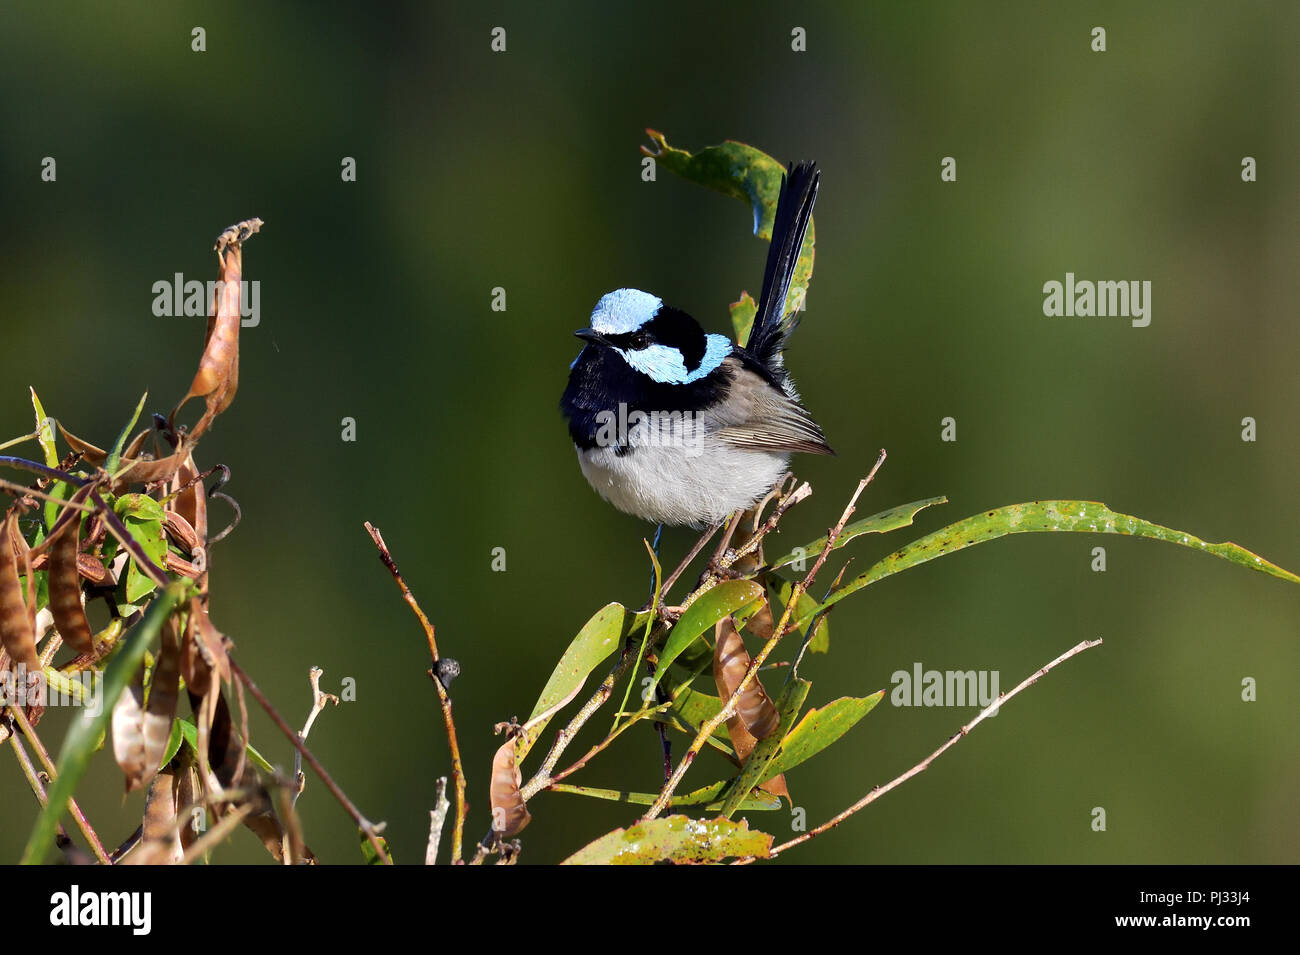 An Australian, Queensland Male Superb Fairy-wren ( Malurus cyaneus ) perched on a tree branch looking for food - Stock Image